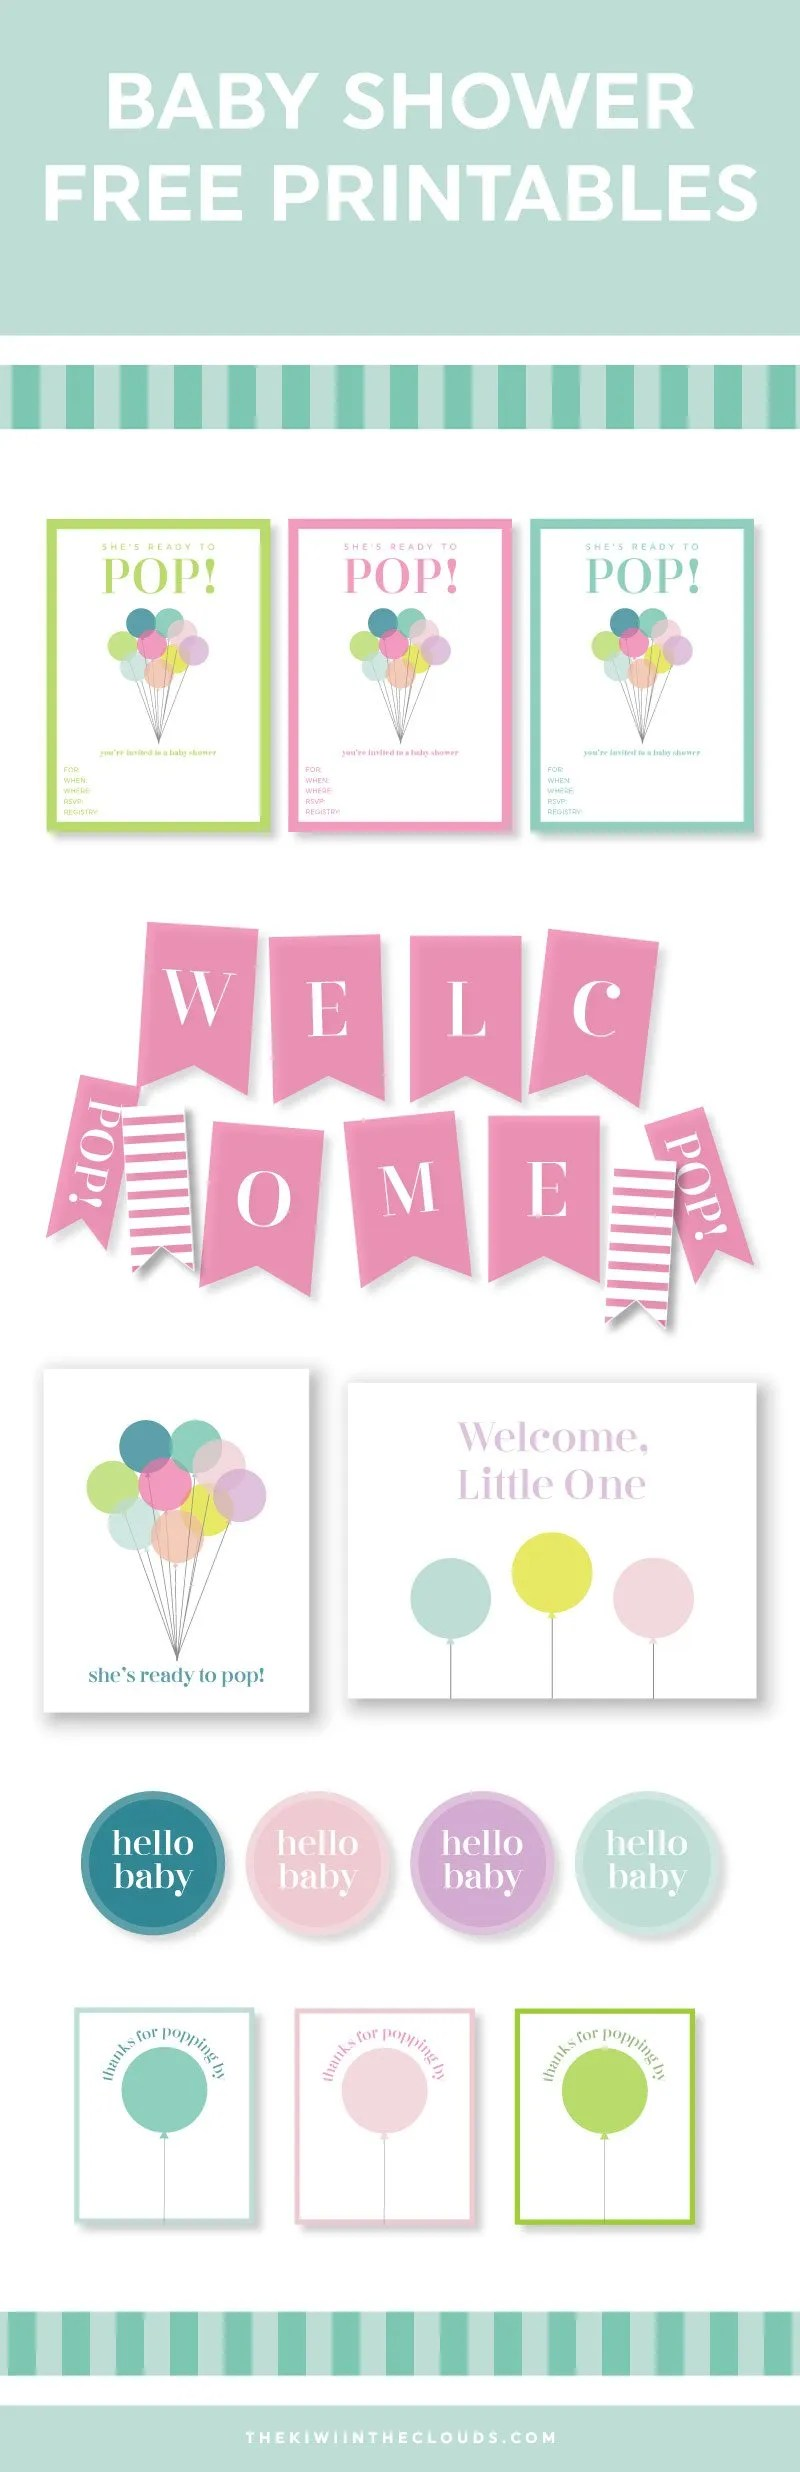 graphic regarding Free Printable Elephant Baby Shower called 65 No cost Youngster Shower Printables for an Lovely Get together